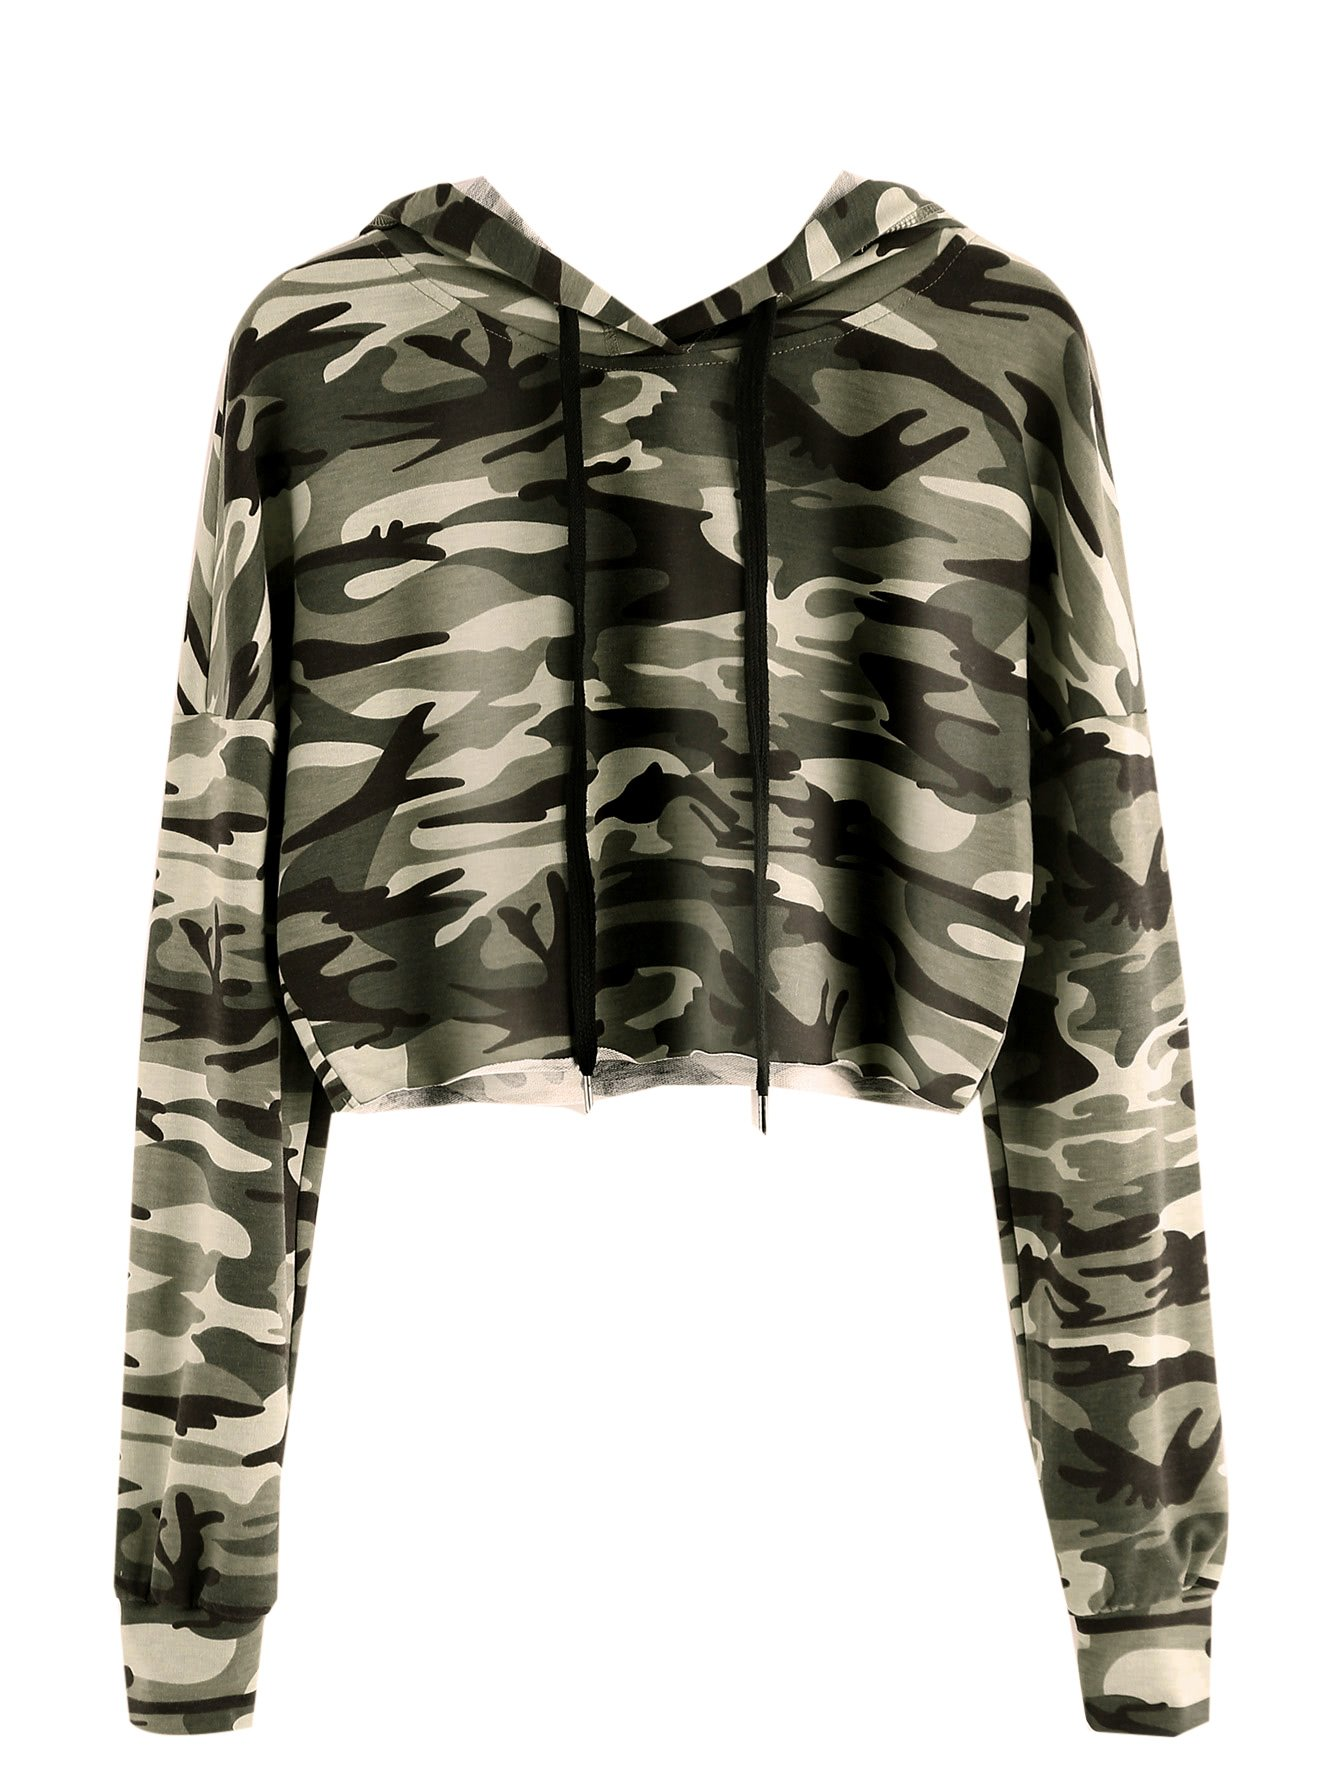 MakeMeChic Women's Long Sleeve Camo Print Sweatshirt Crop Top Hoodies Army Green XS